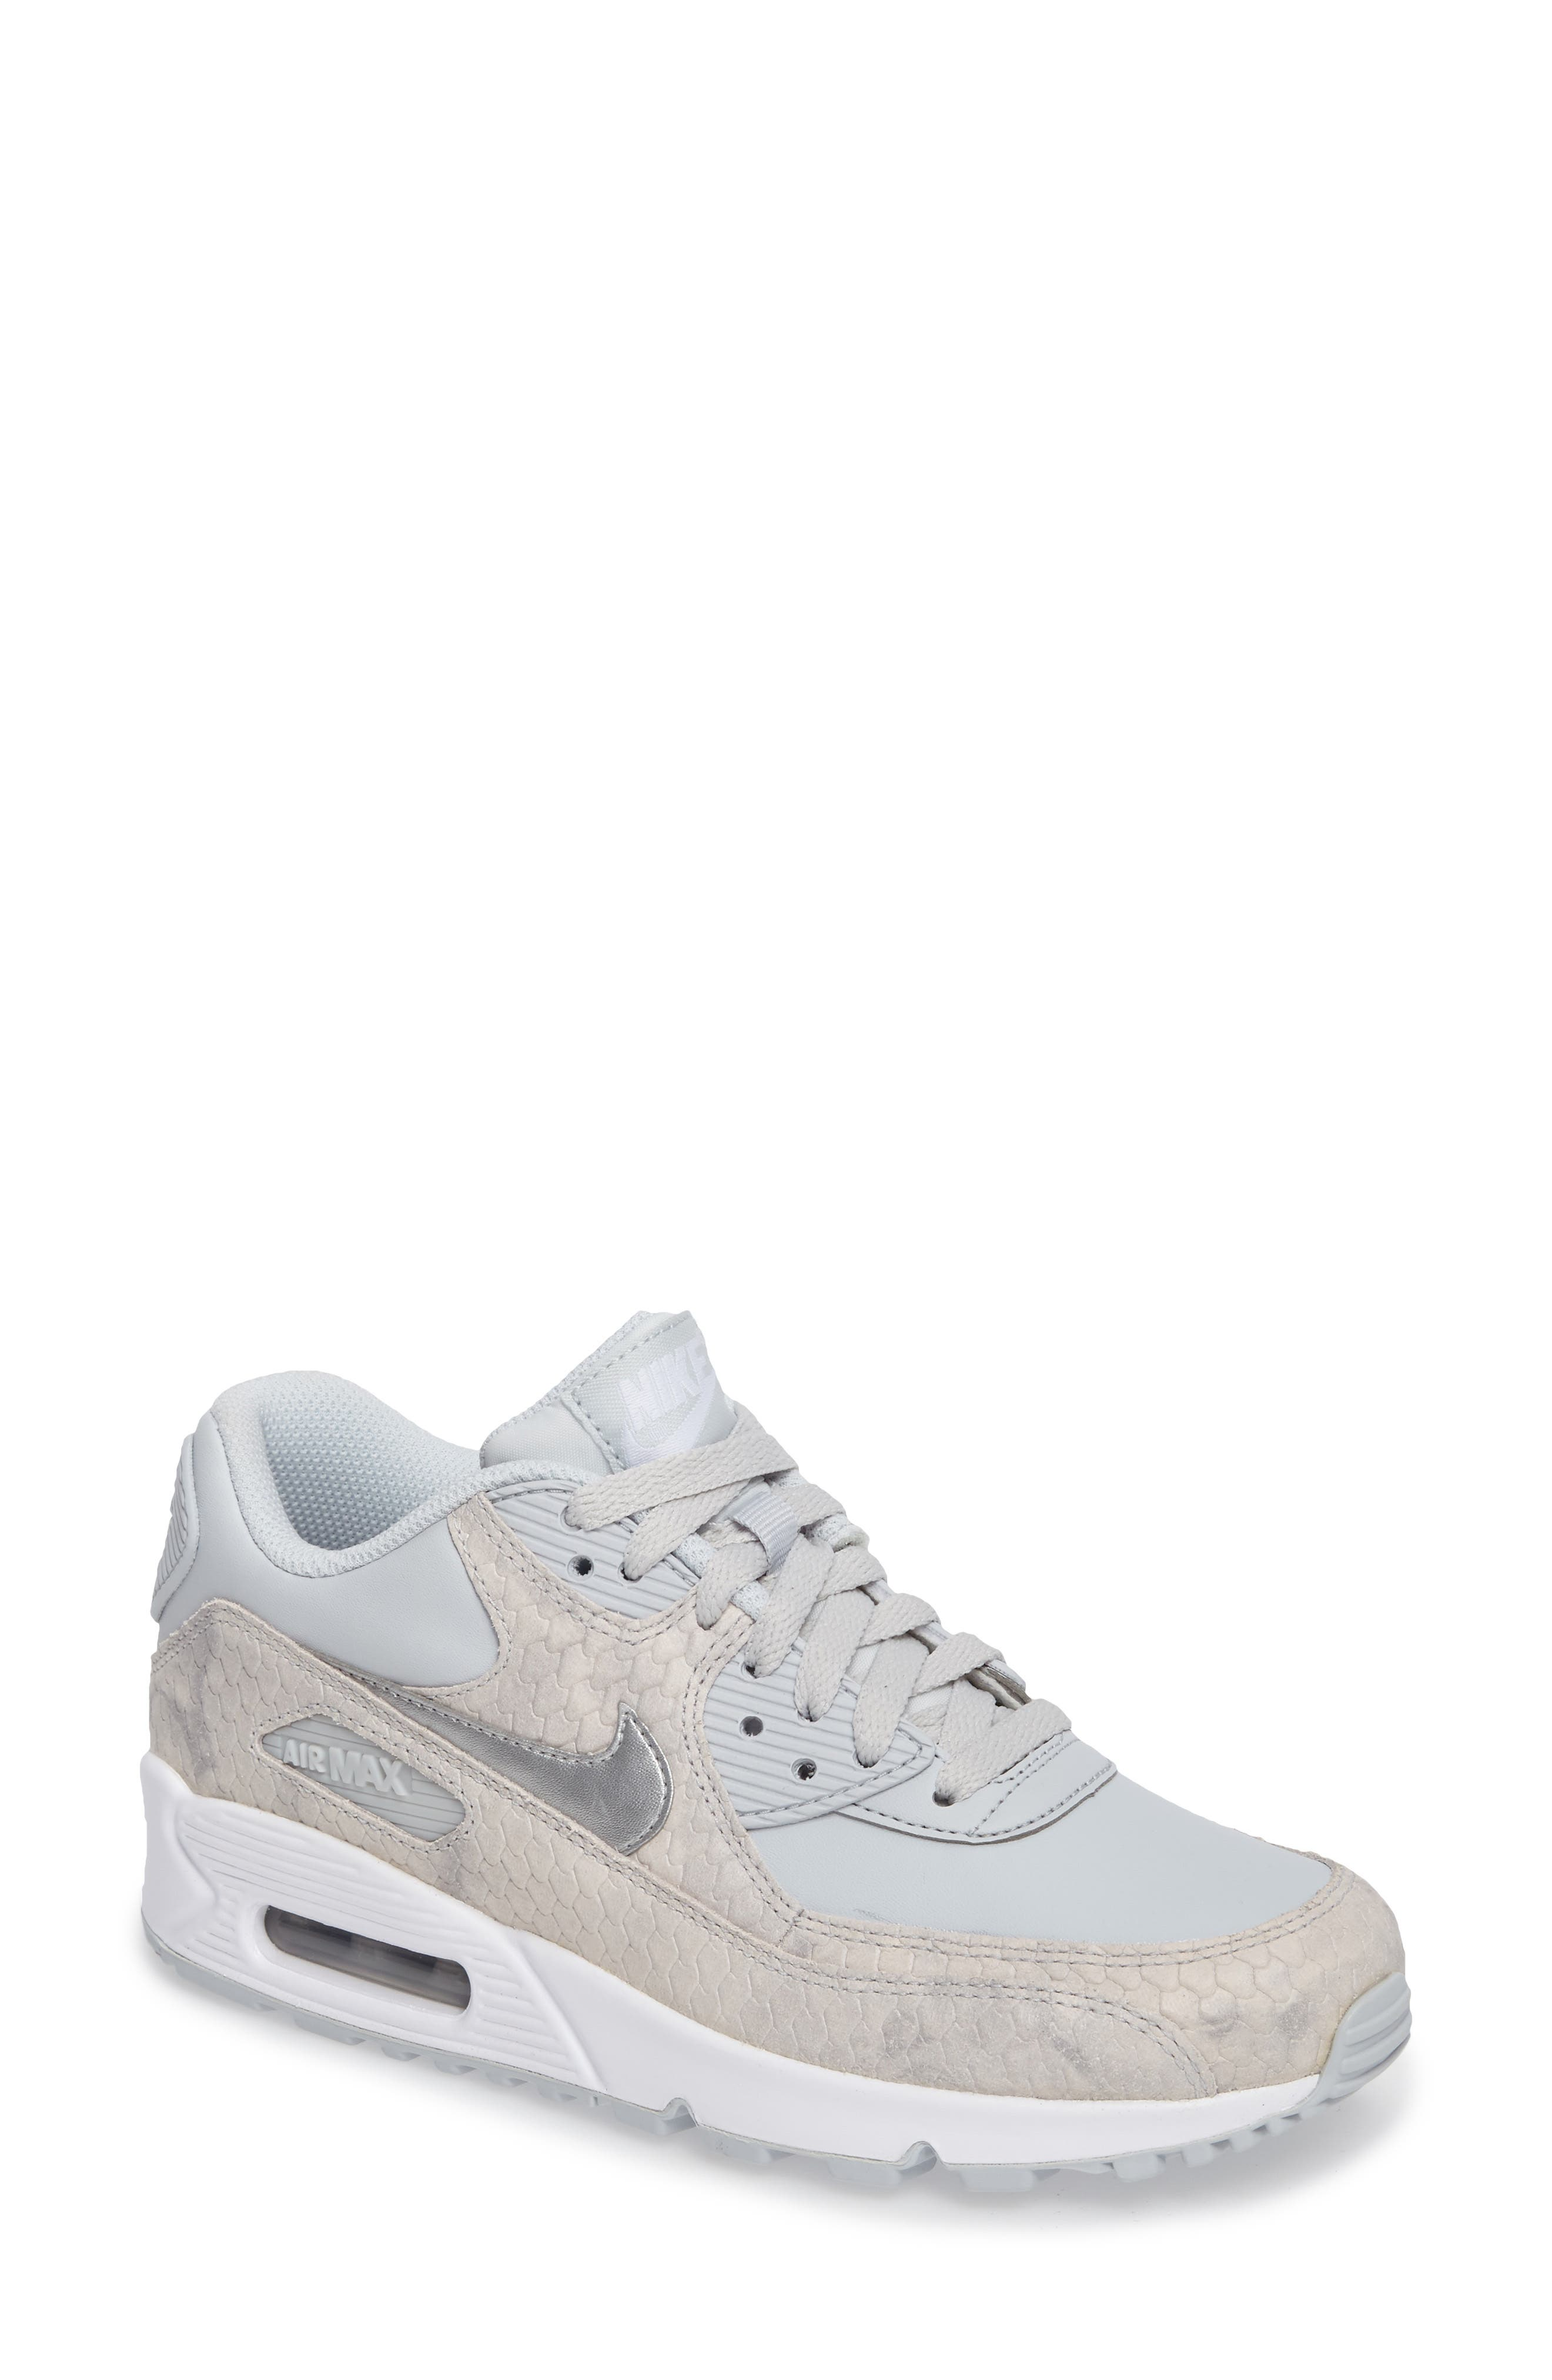 Alternate Image 1 Selected - Nike Air Max 90 Embossed Premium Sneaker (Women)